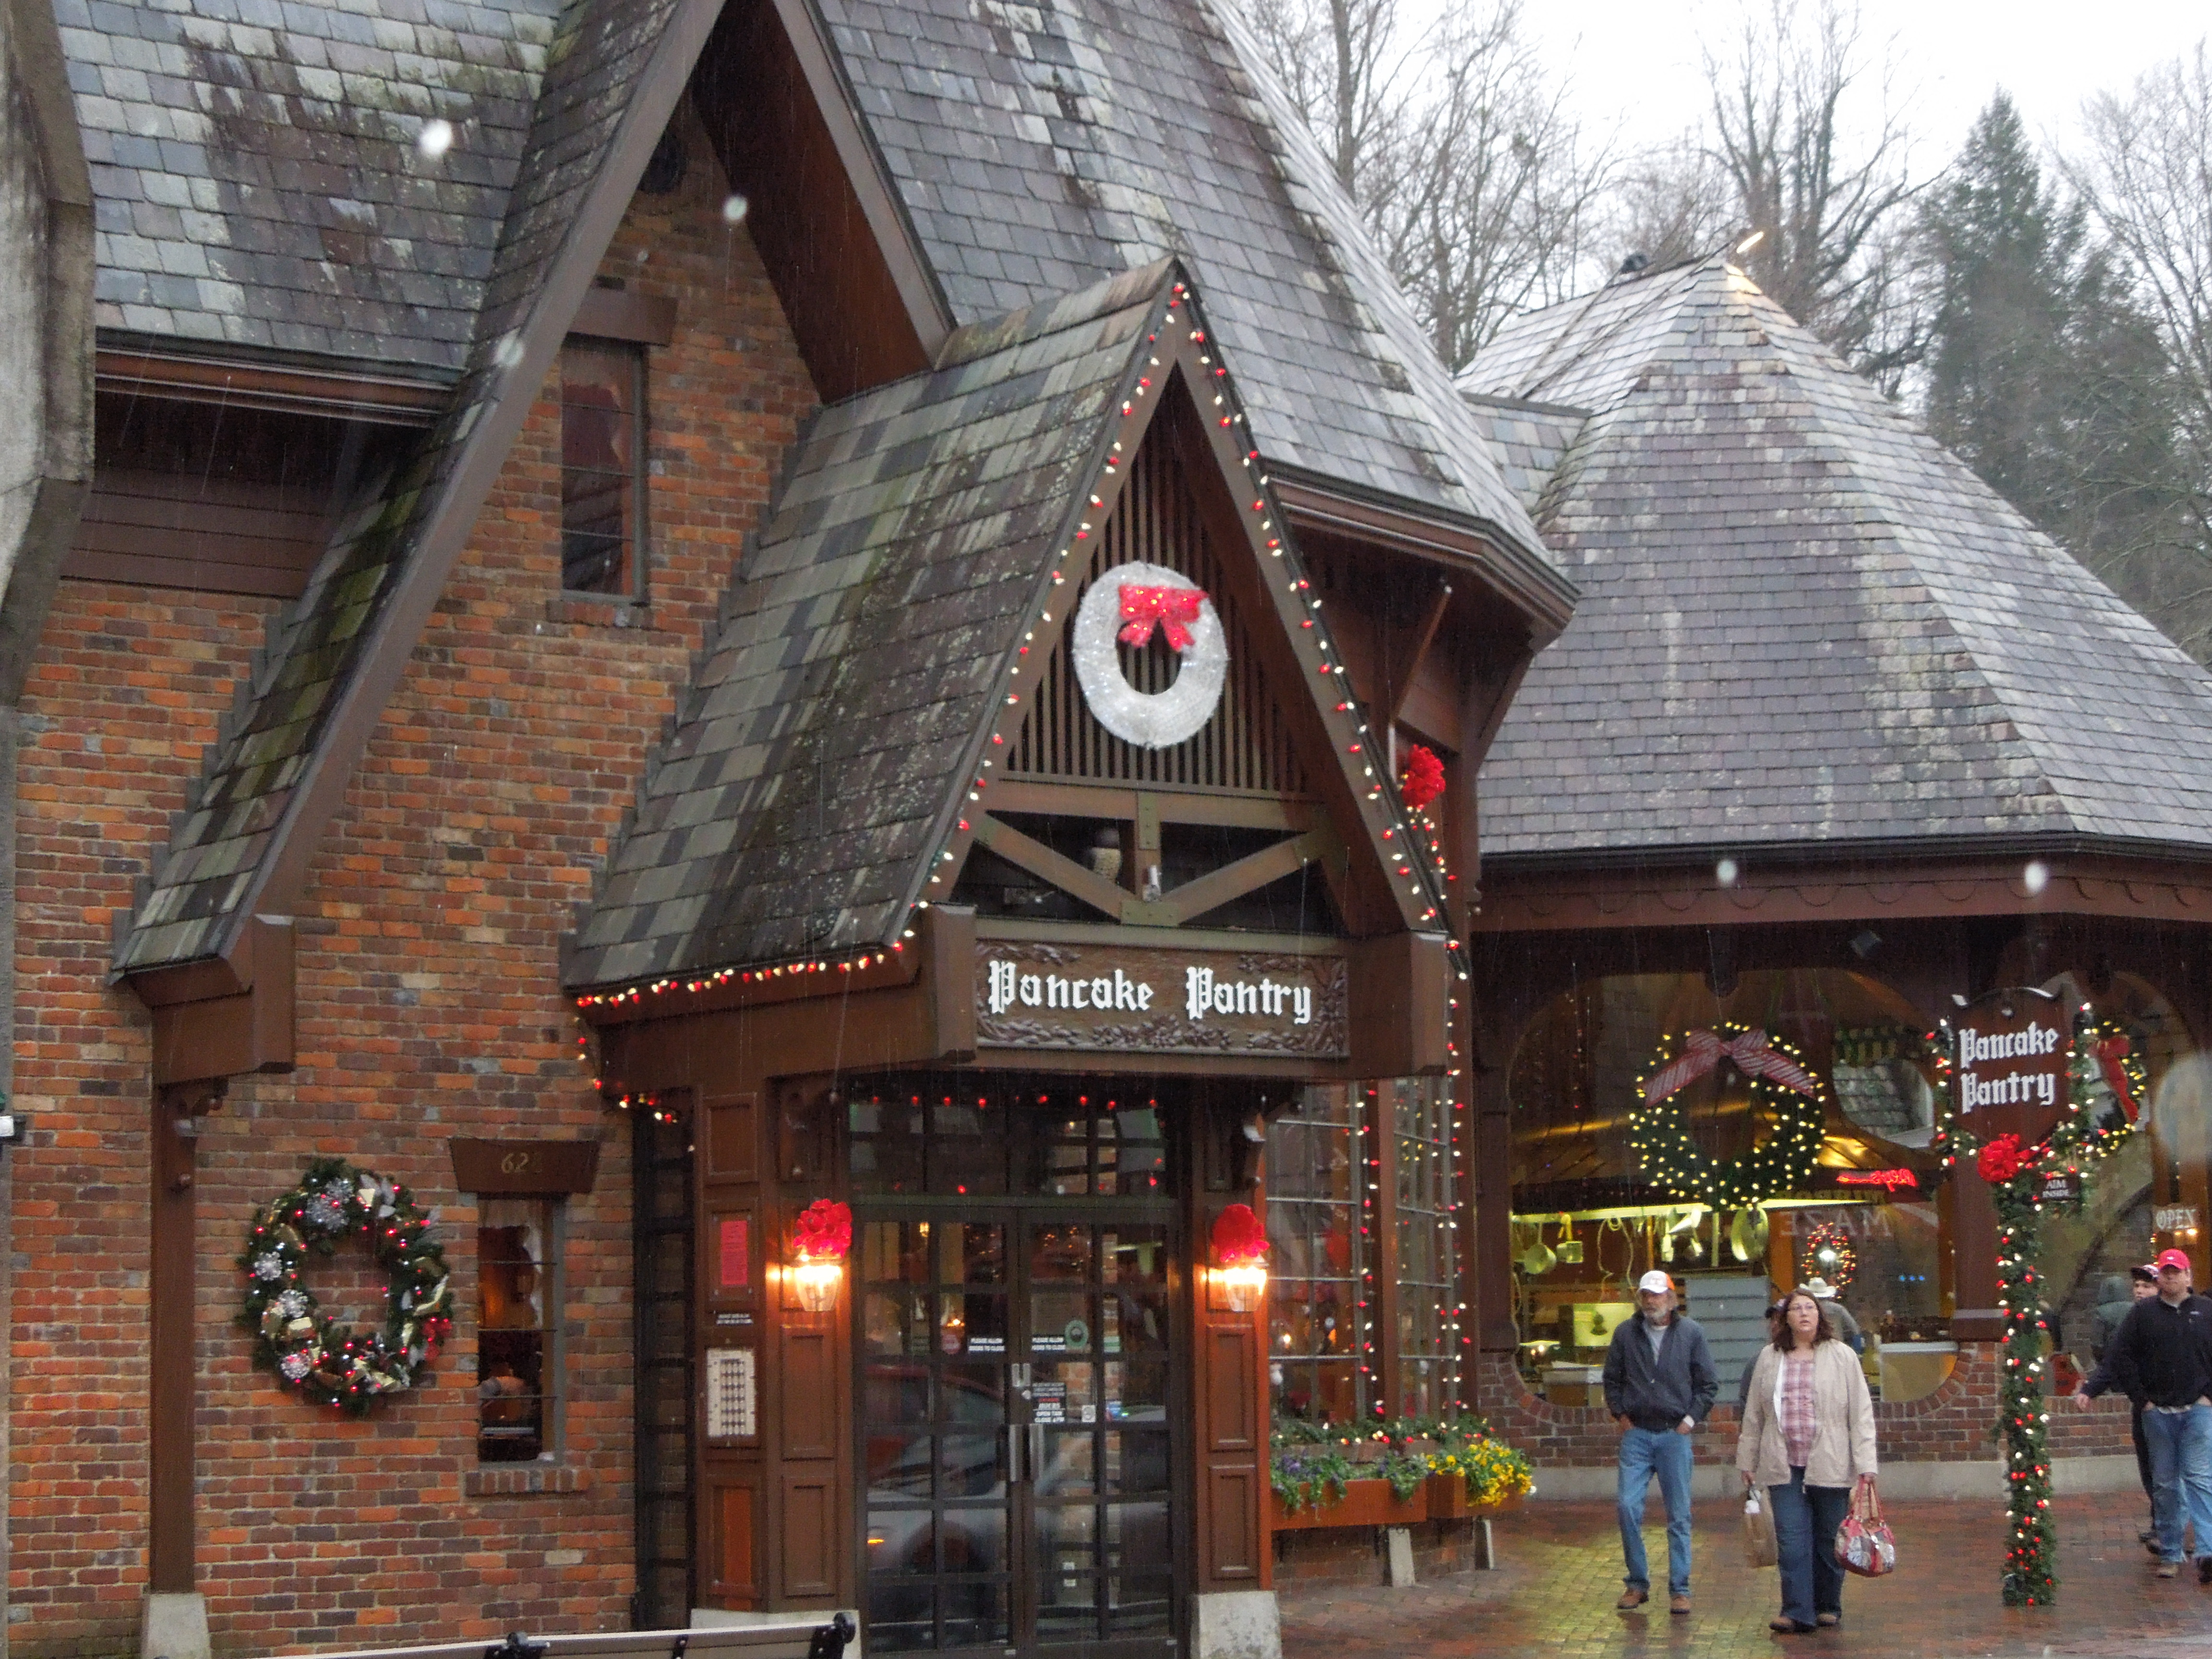 Best ideas about Pancake Pantry Gatlinburg Tn . Save or Pin Not All Pancakes Are The Same Now.